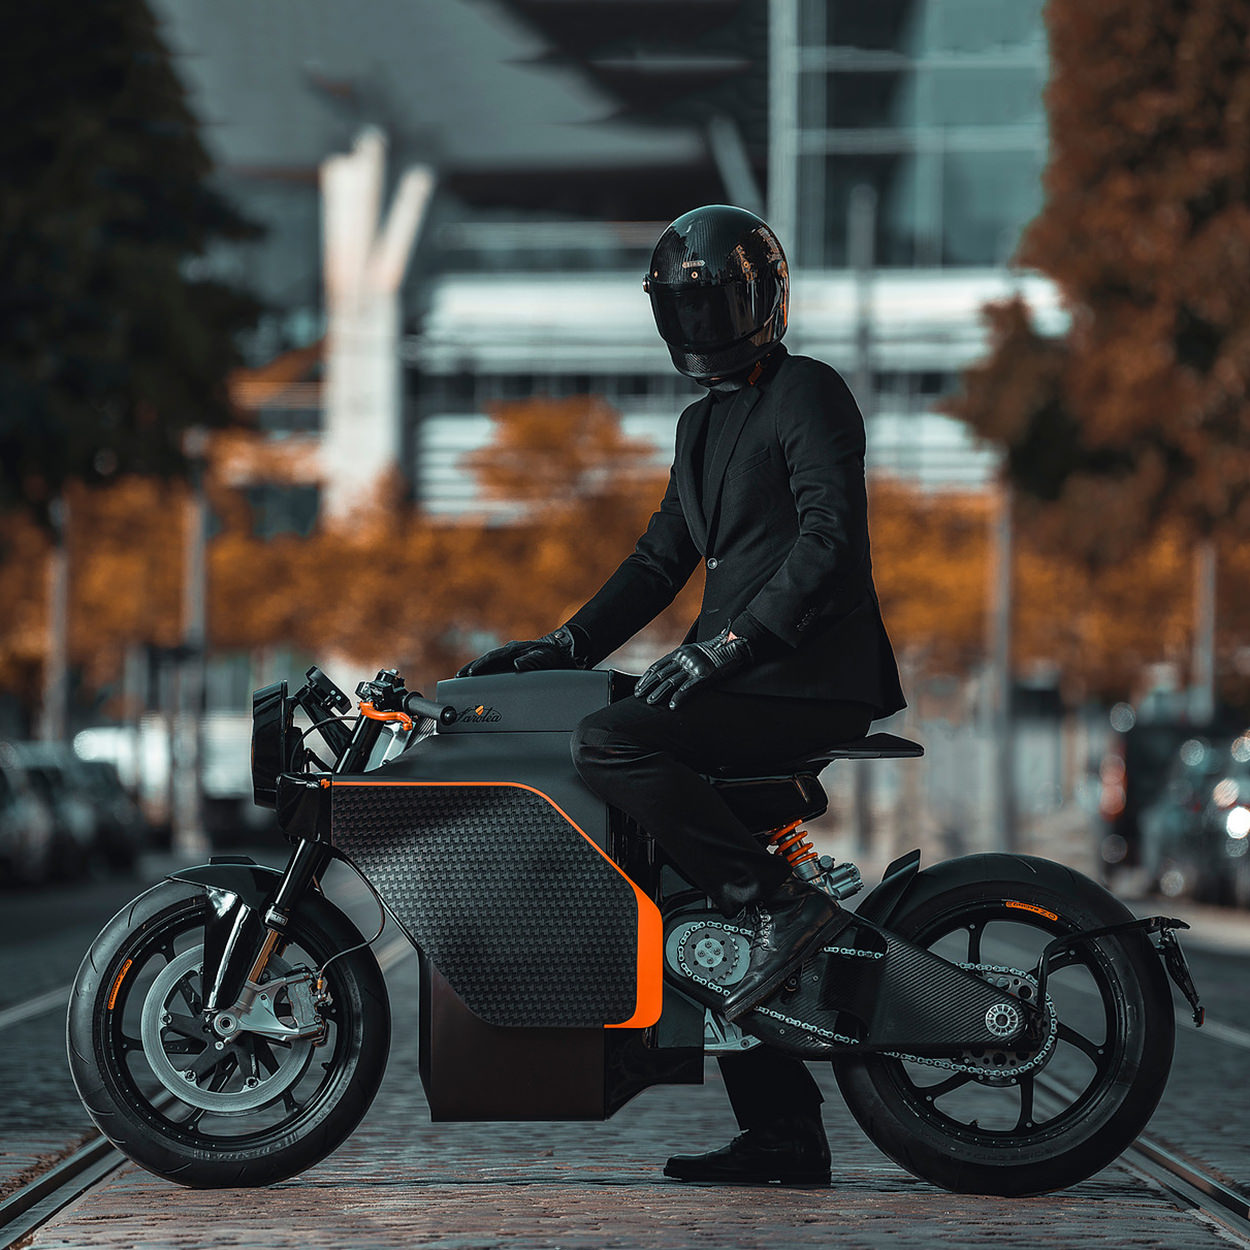 Saroléa x Mighty Machines Manx7 electric motorcycle